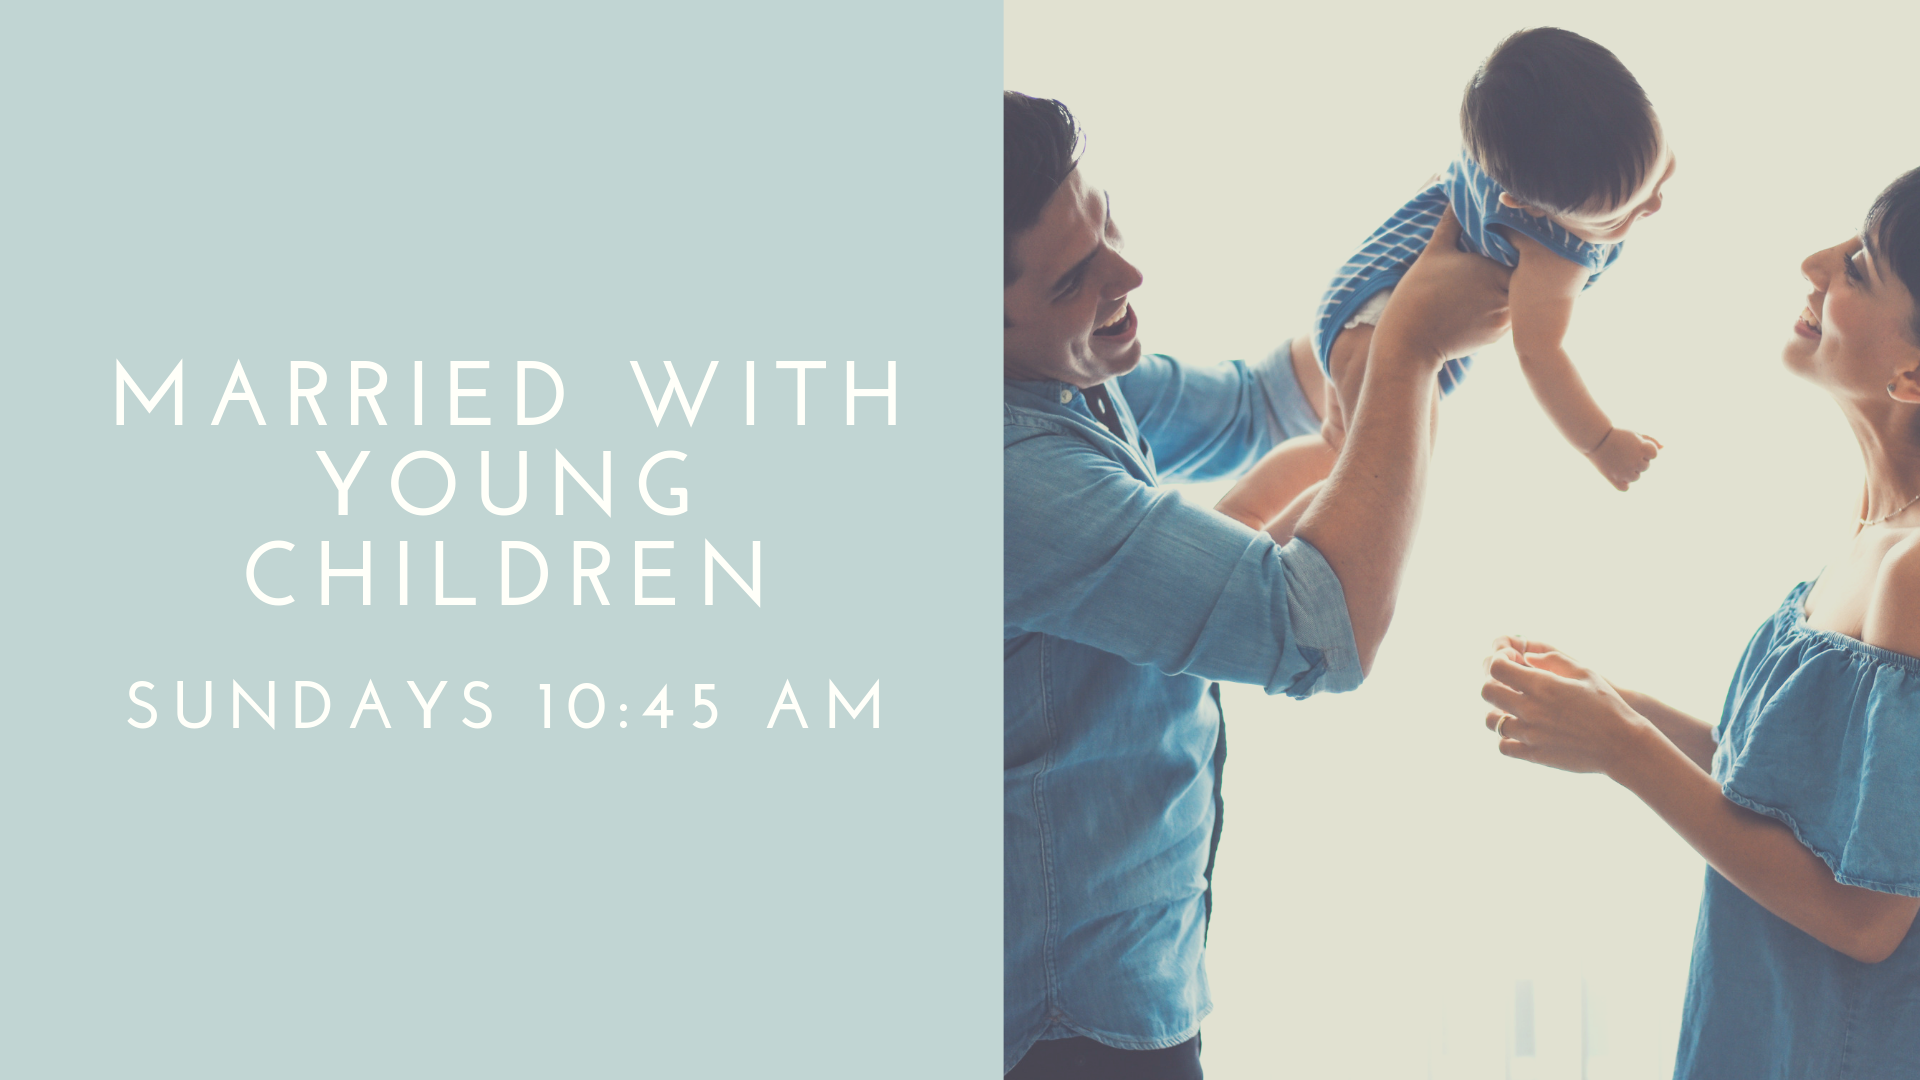 If you are a Married couple age 33-40 with young children, we invite you to fellowship and grow in God's Word with us Sunday morning at 10:45 am. Led by two couples the Andersons the Hoveys,